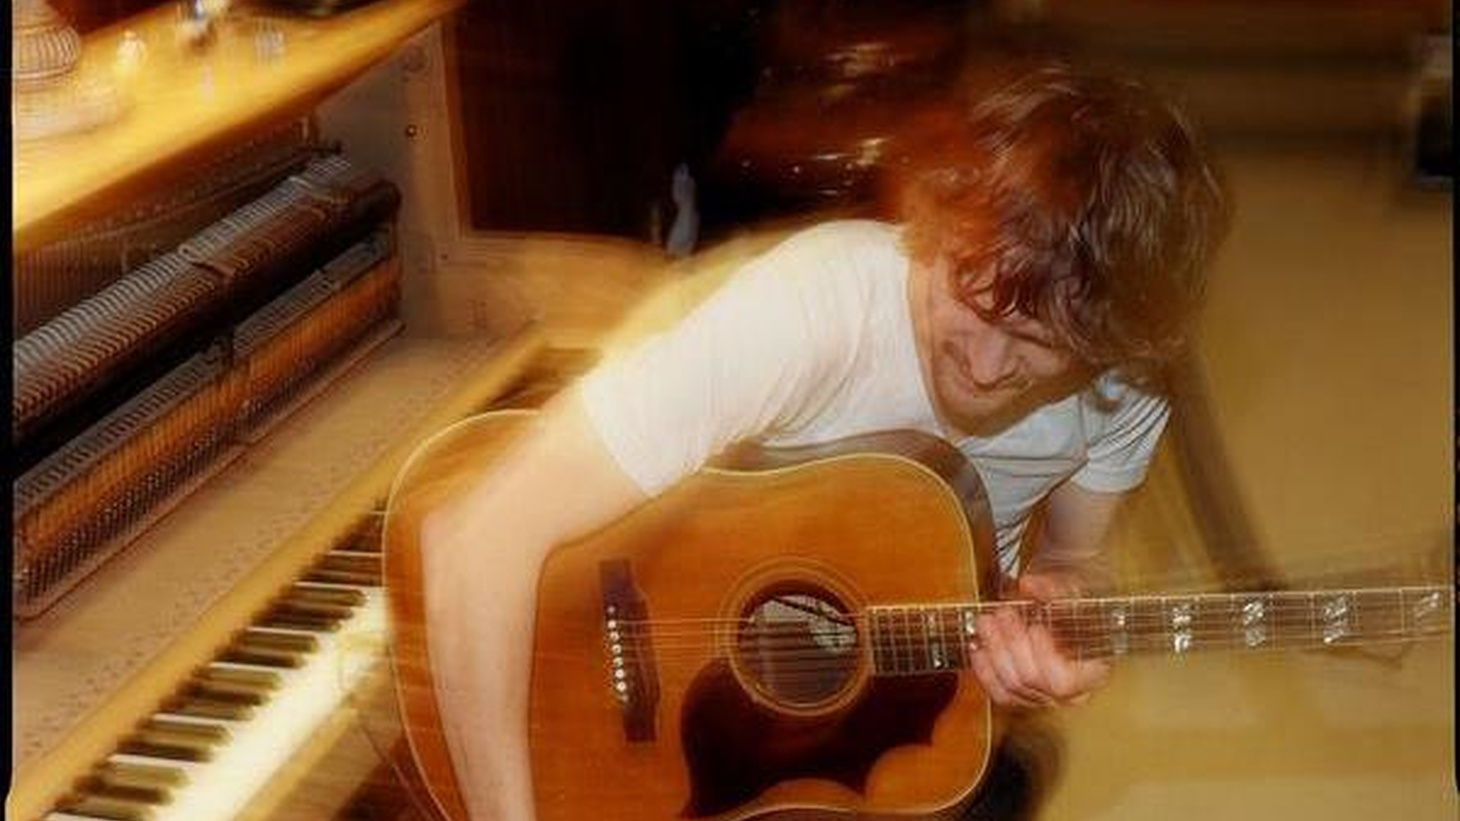 Brendan Benson was masterful at creating power pop before he joined Jack White as a founding member of The Raconteurs. Now, a larger audience will get to hear his solo work. His fourth solo recording is getting critical acclaim and we'll get a taste at 11:15am.